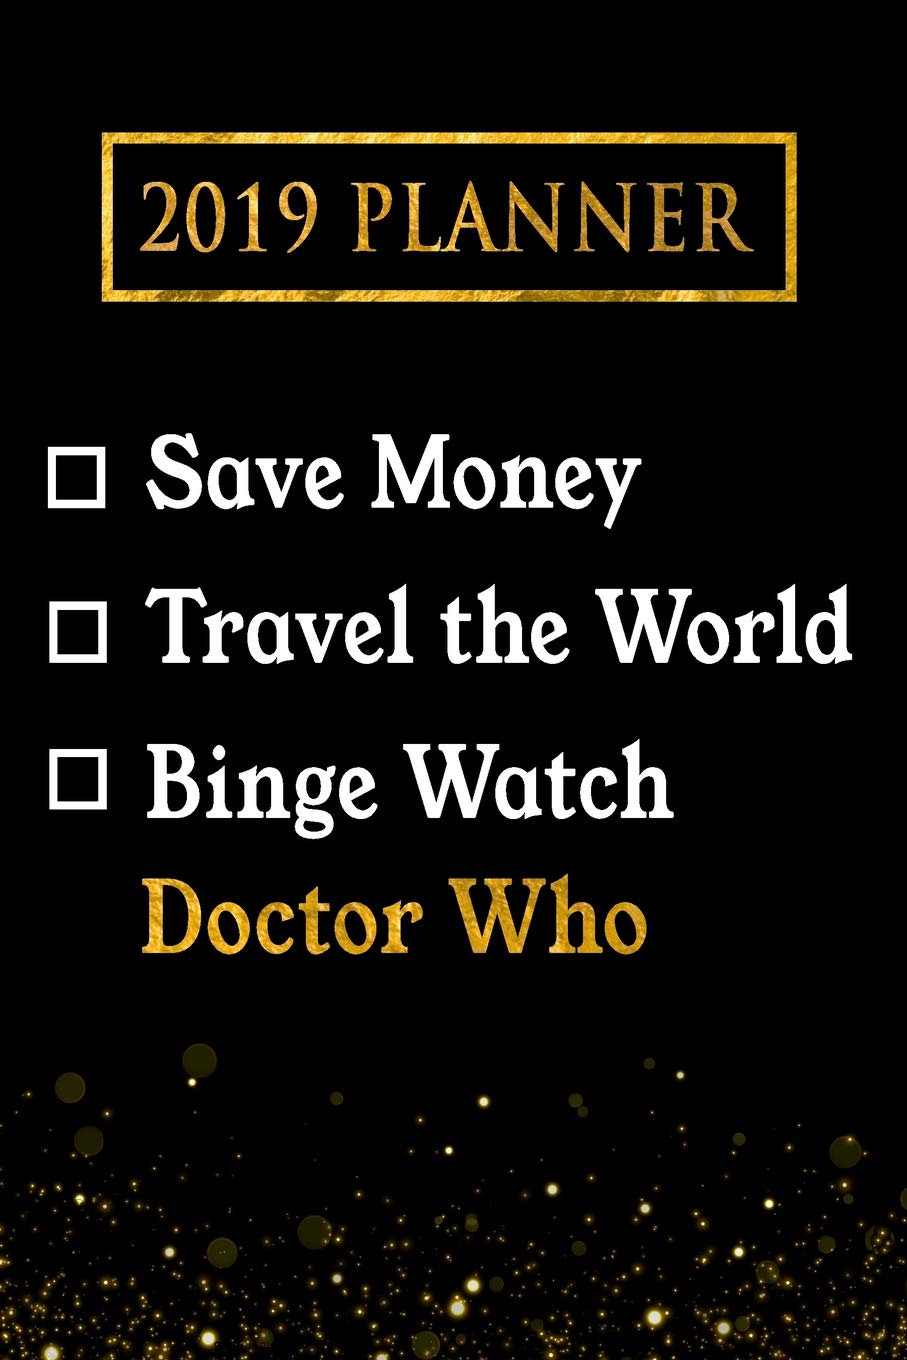 Watch Doctor Who Christmas Special 2019.2019 Planner Save Money Travel The World Binge Watch